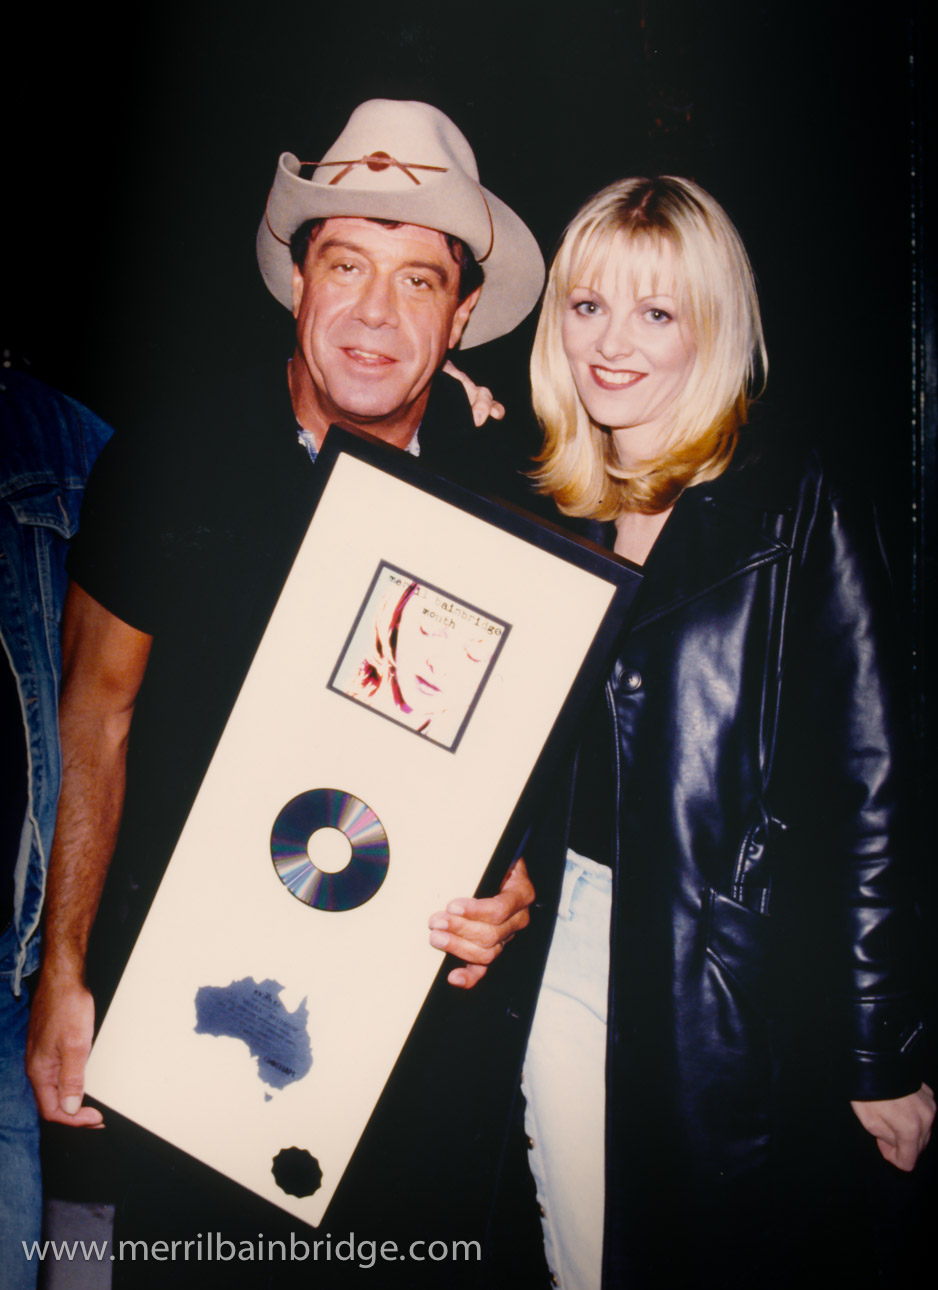 merril-bainbridge-molly-meldrum.jpg